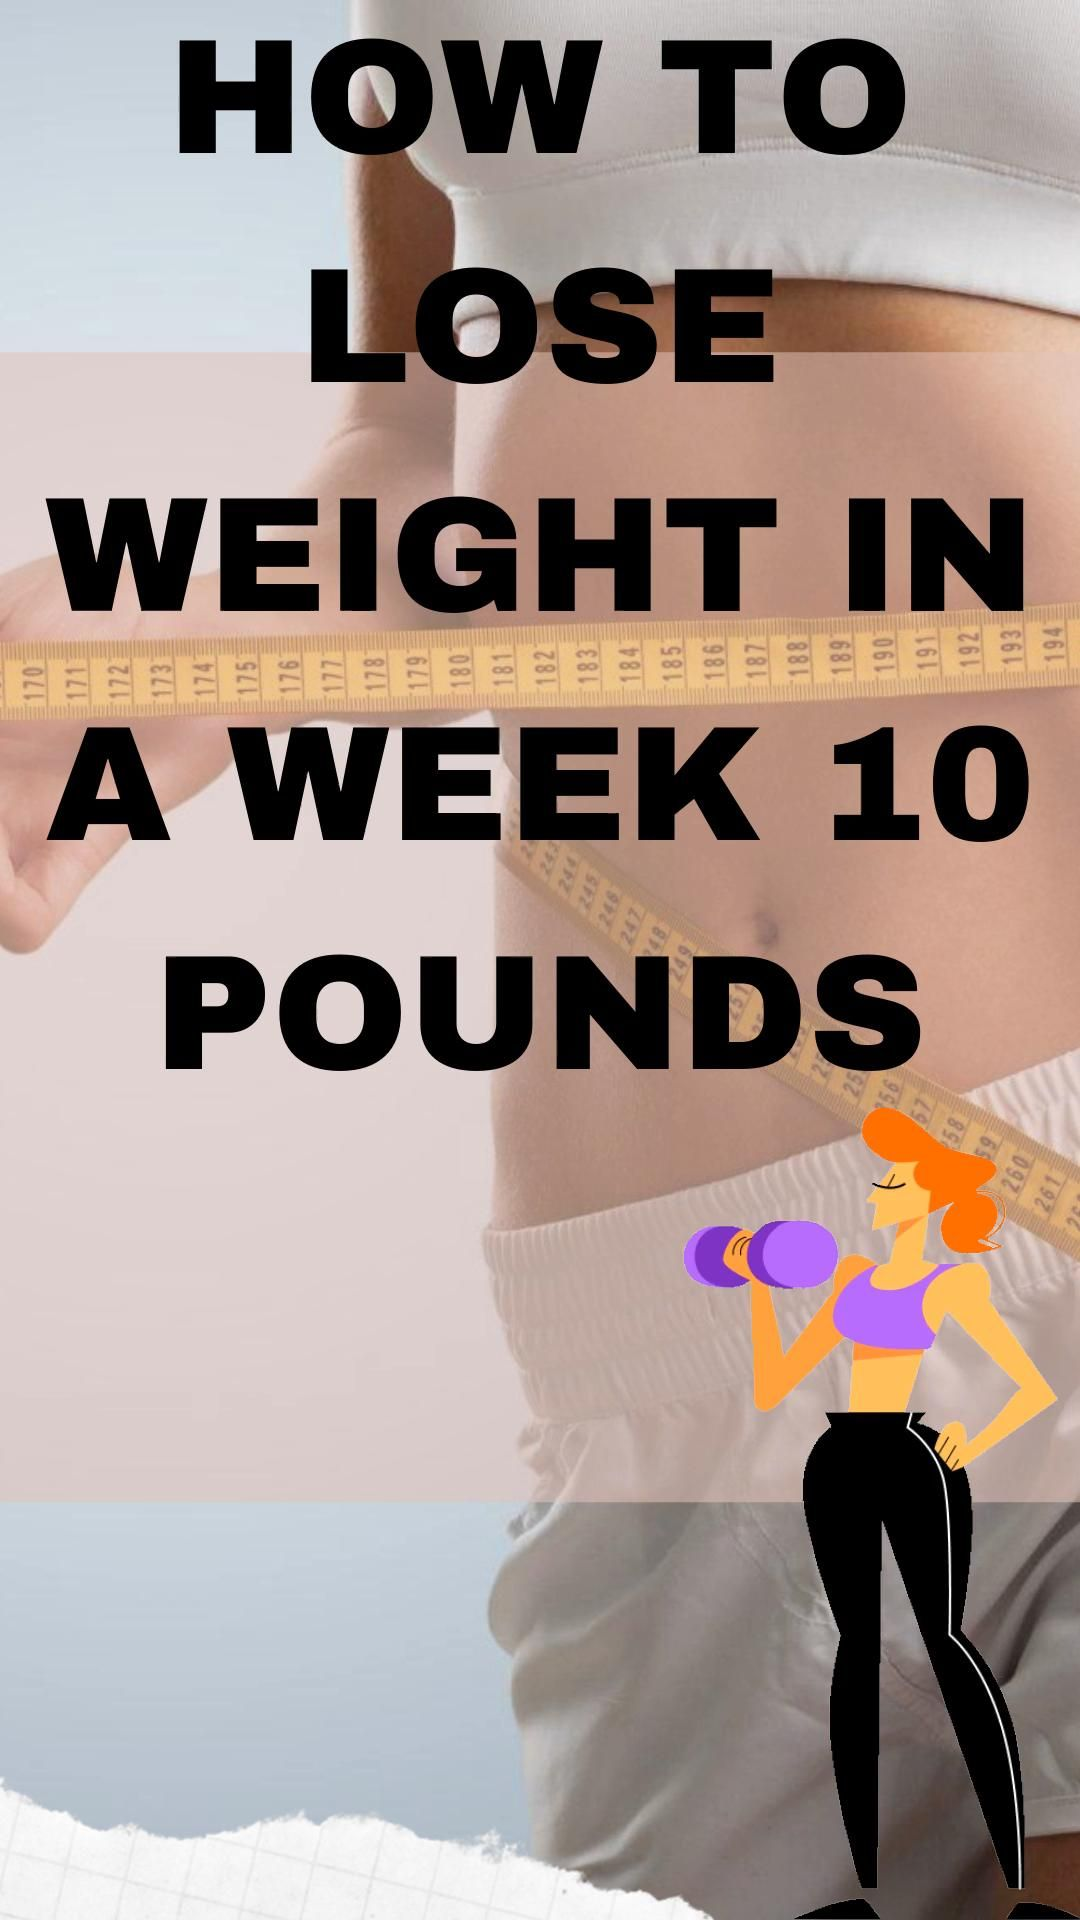 How to lose weight in a week 10 pounds